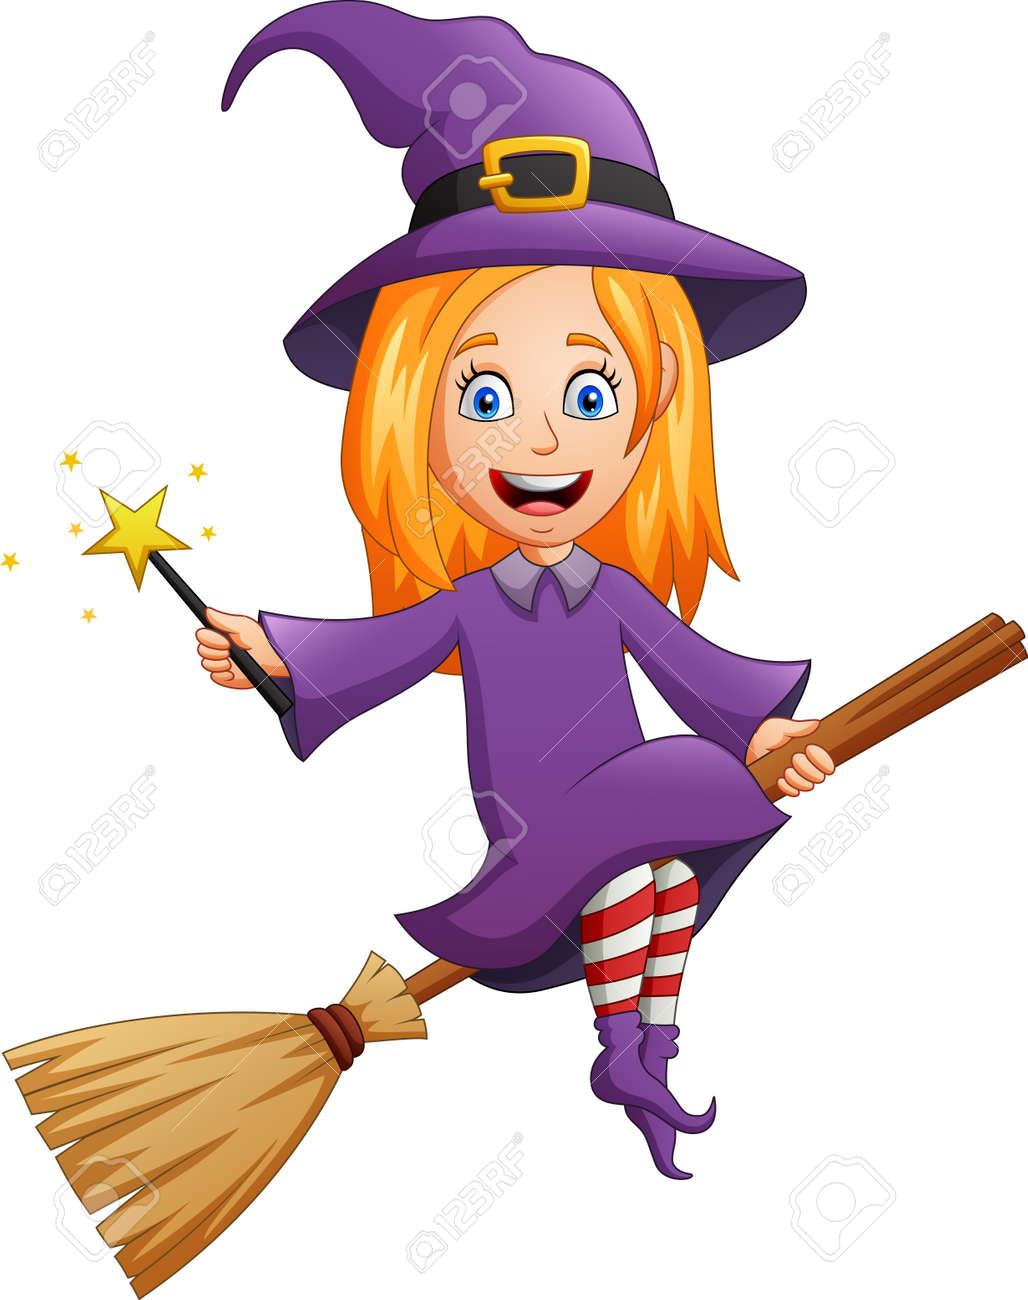 Halloween cartoon character witch costume with holding wand. vector illustration - 129710530